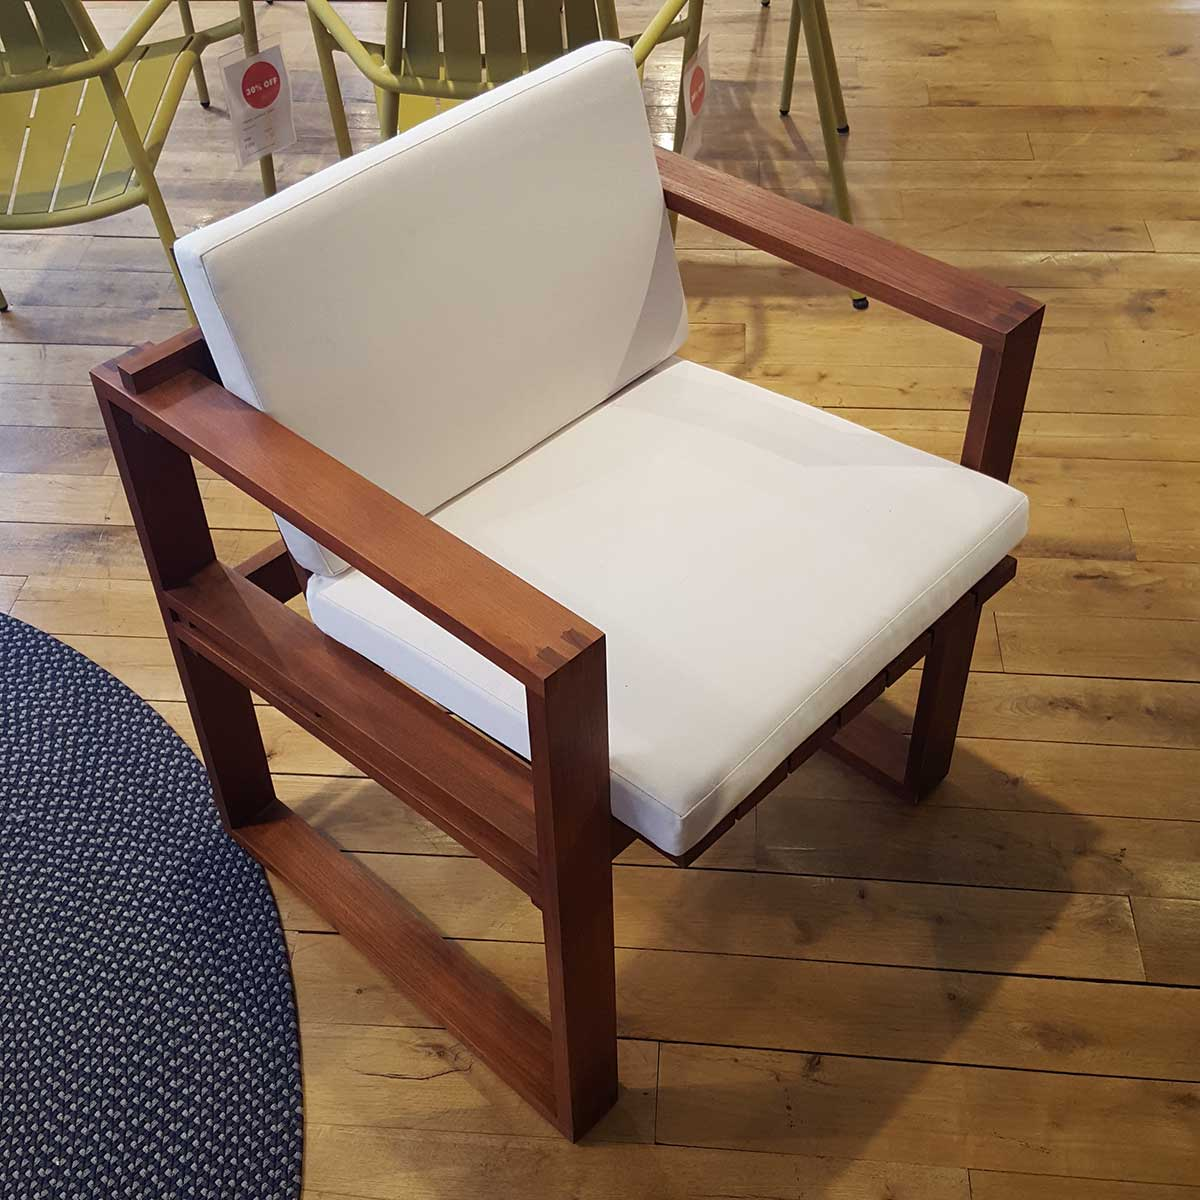 Ex Display BK10 Dining Chair